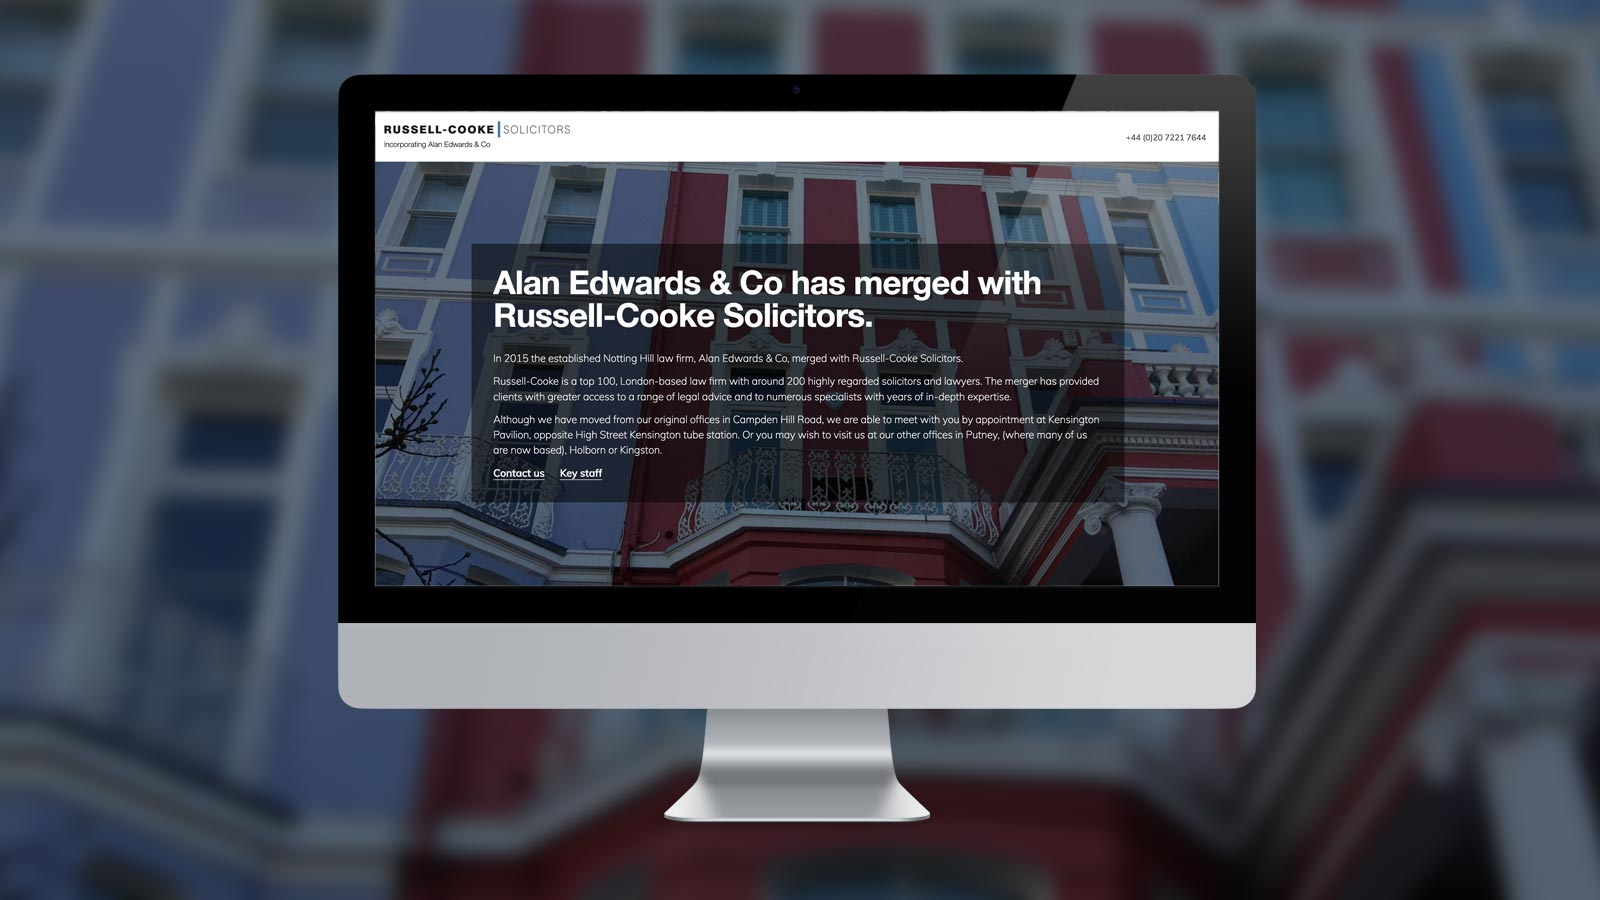 Alan Edwards & Co